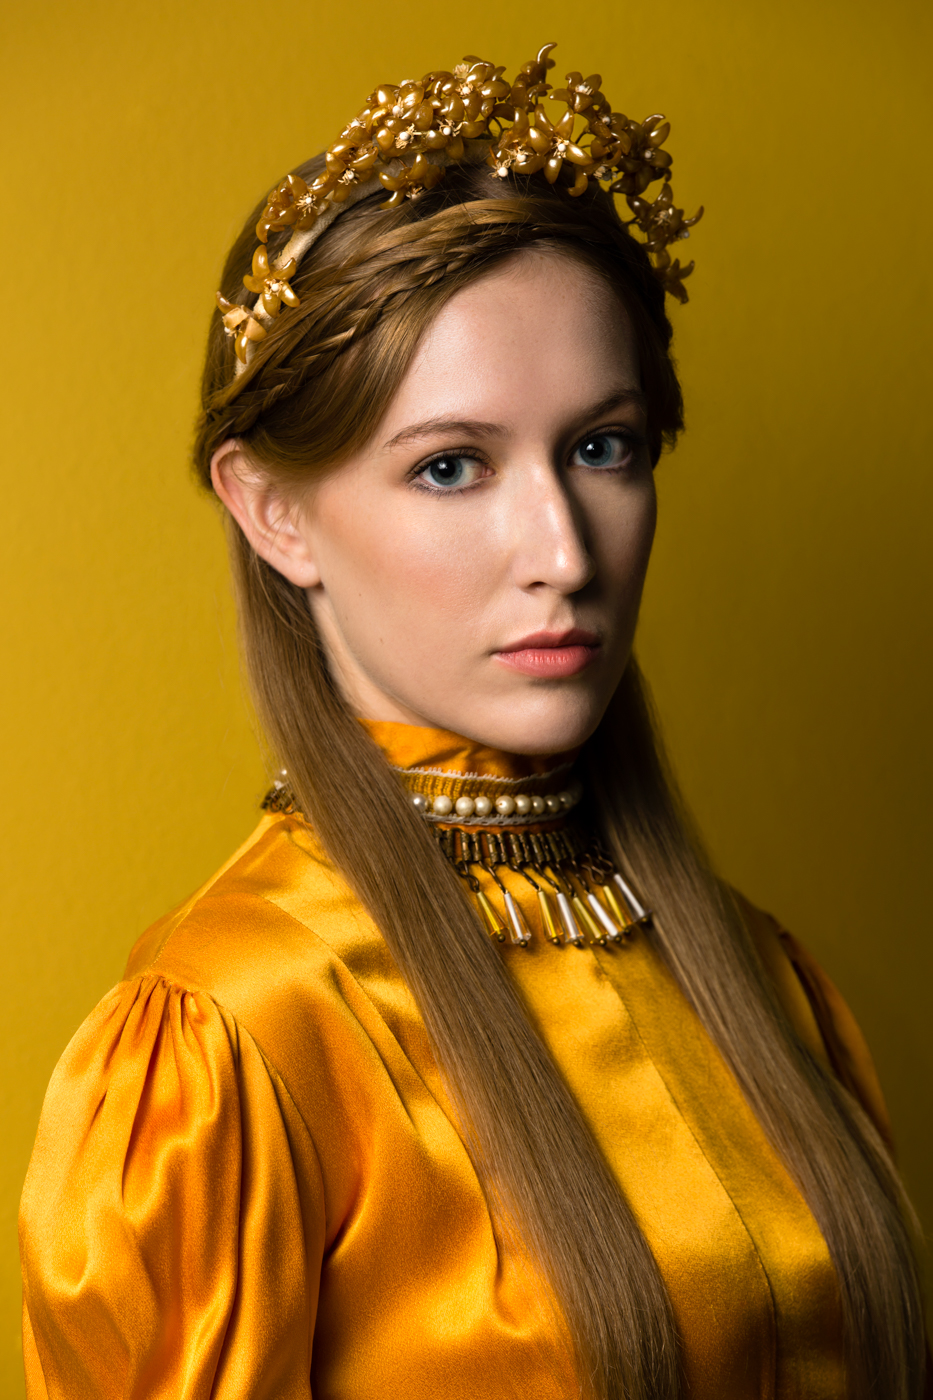 game-of-thrones-GOT-makeup-flower-crown-orlando-studio.jpg